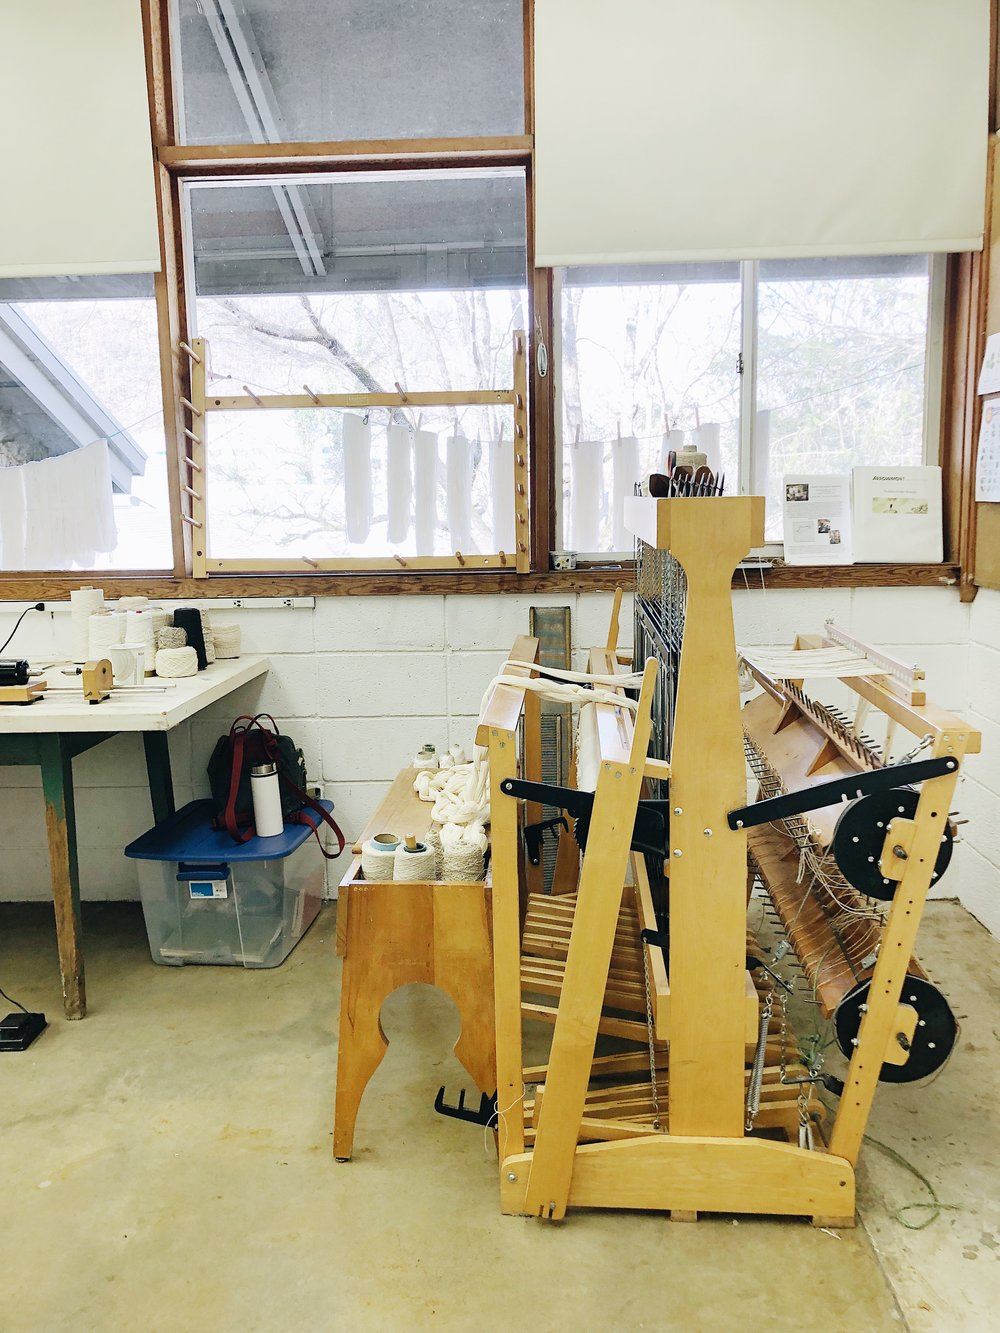 Weaving corner in the fiber studio.